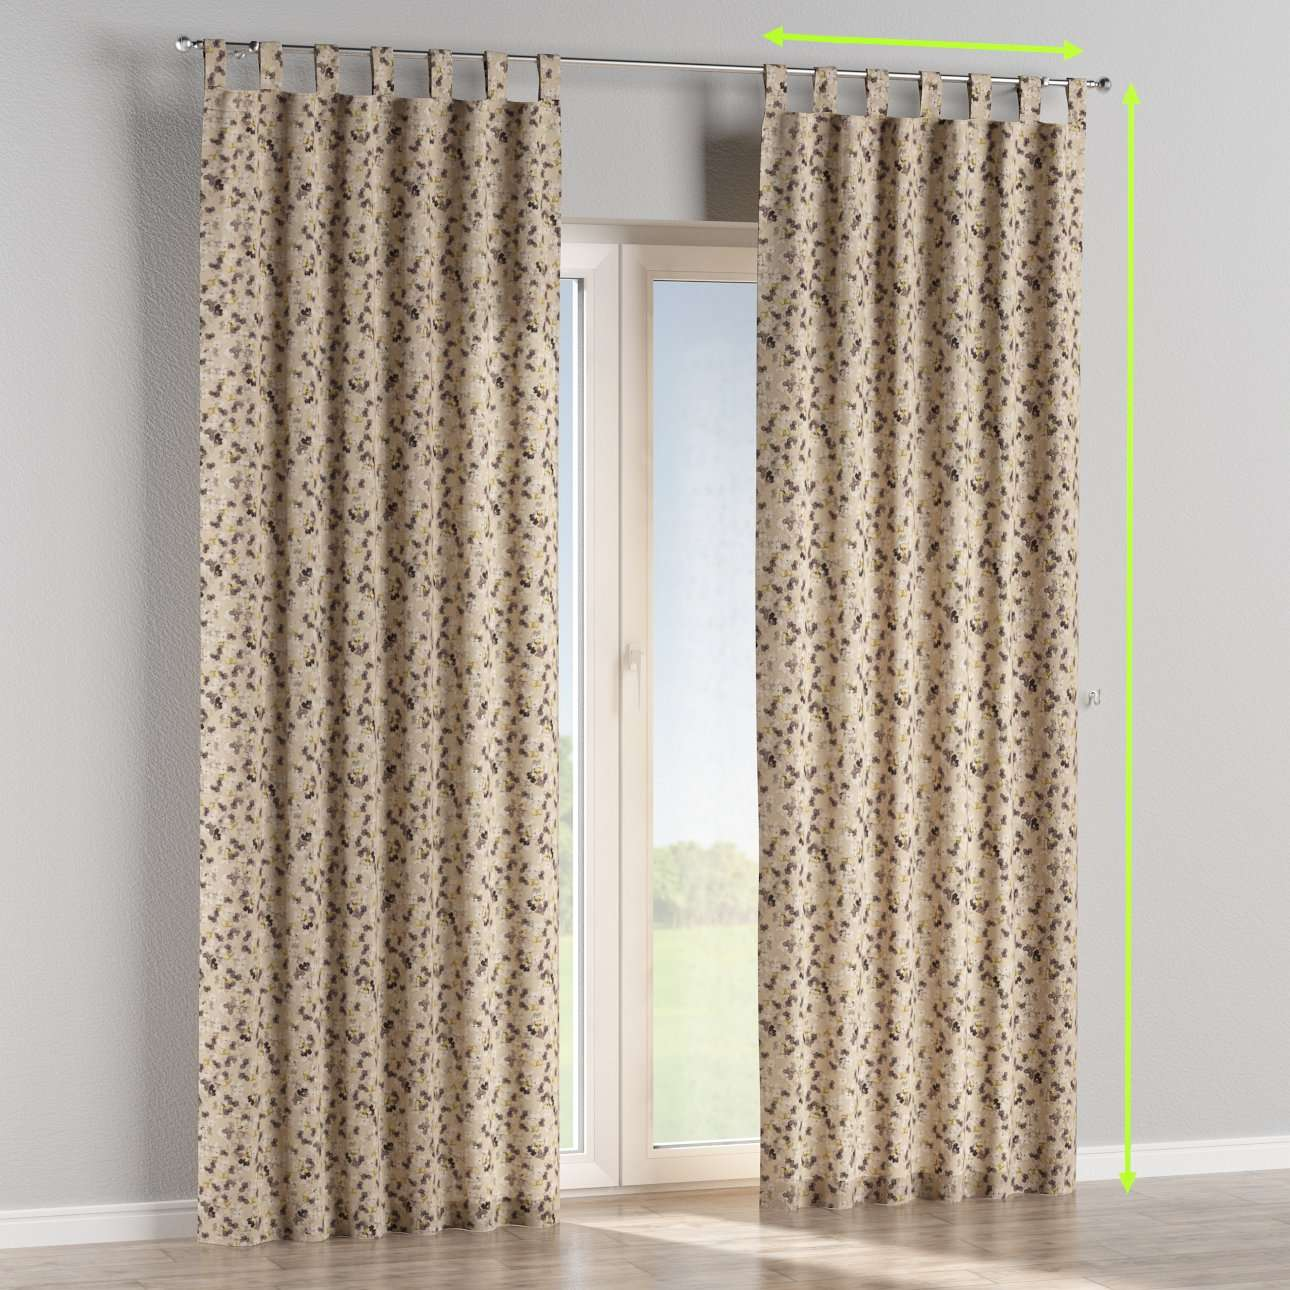 Tab top lined curtains in collection Londres, fabric: 140-48